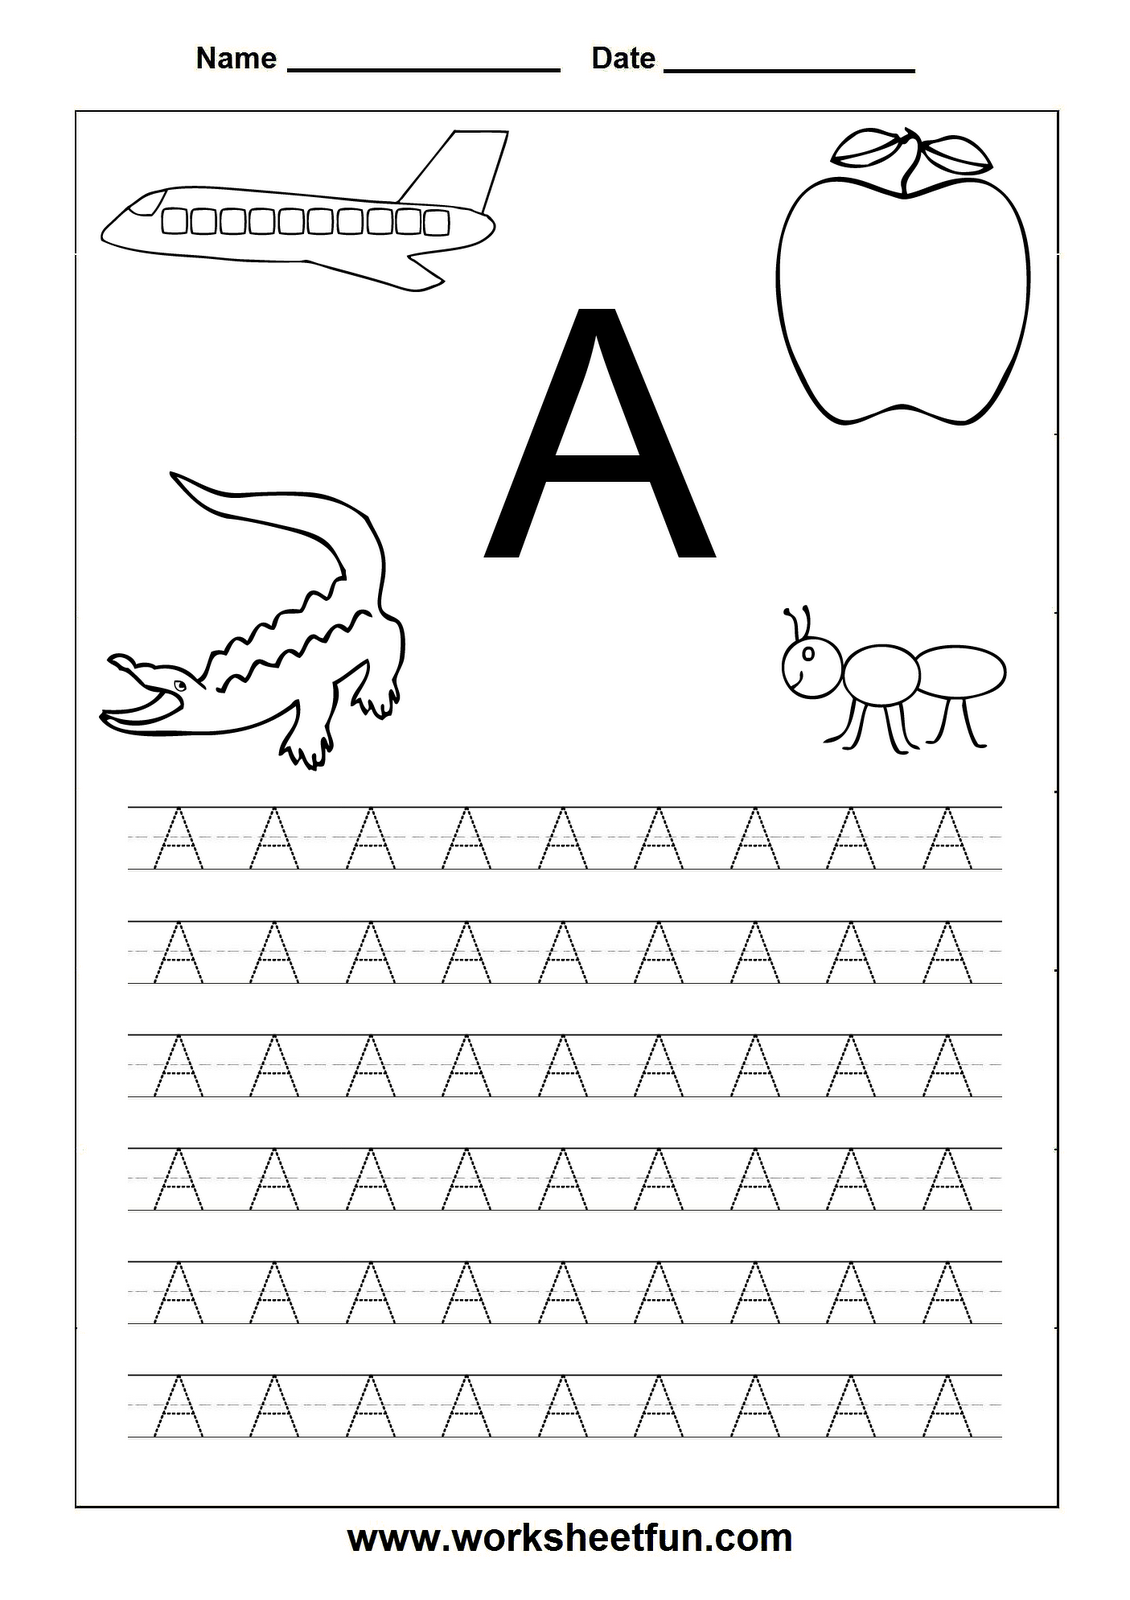 Printables Printable Abc Worksheets For Pre-k 1000 images about toddler worksheets on pinterest alphabet preschool and preschool